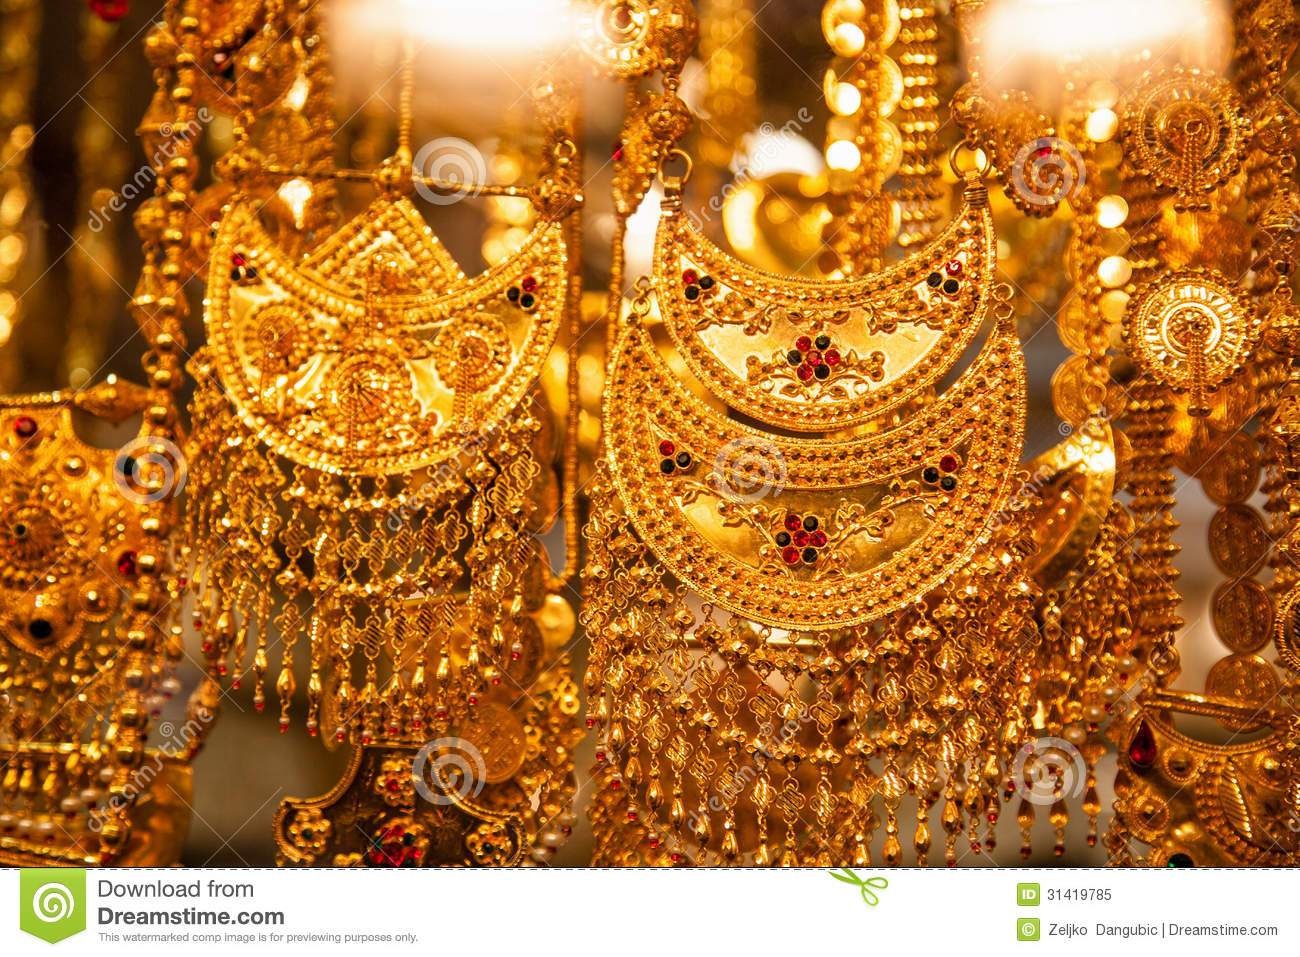 Jewelry At Dubais Gold Souq Stock Image Image of arabic objects